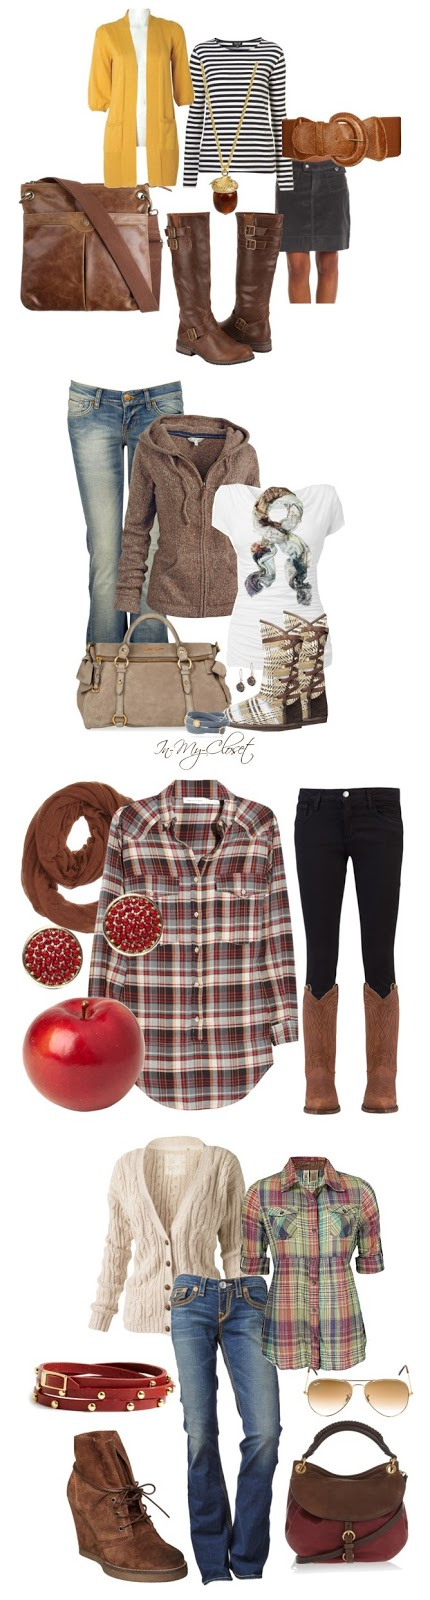 Fall Fashion ||  Fall Outfit Ideas  ||  Click through to see sources